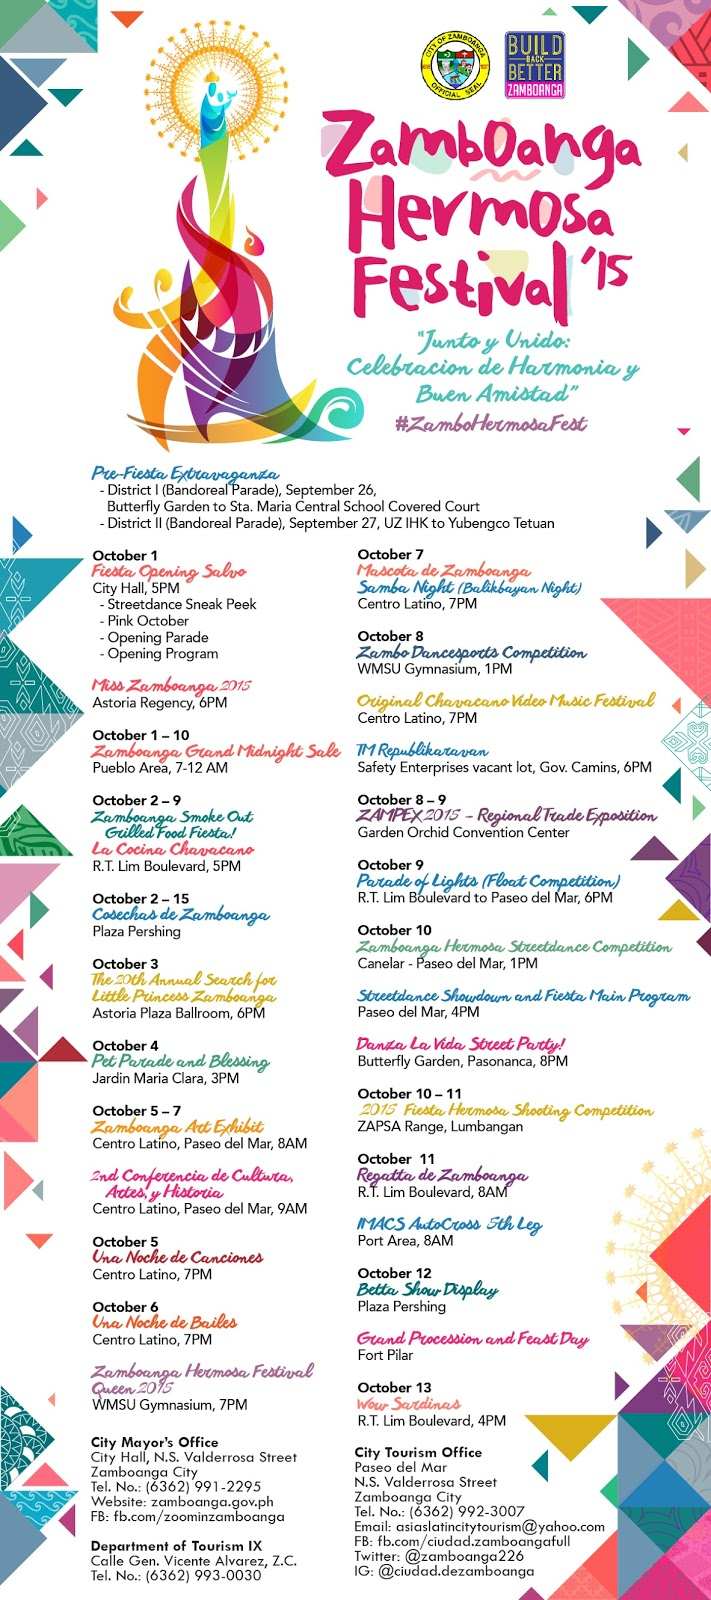 Zamboanga Hermosa Festival 2015 Calendar of Activities